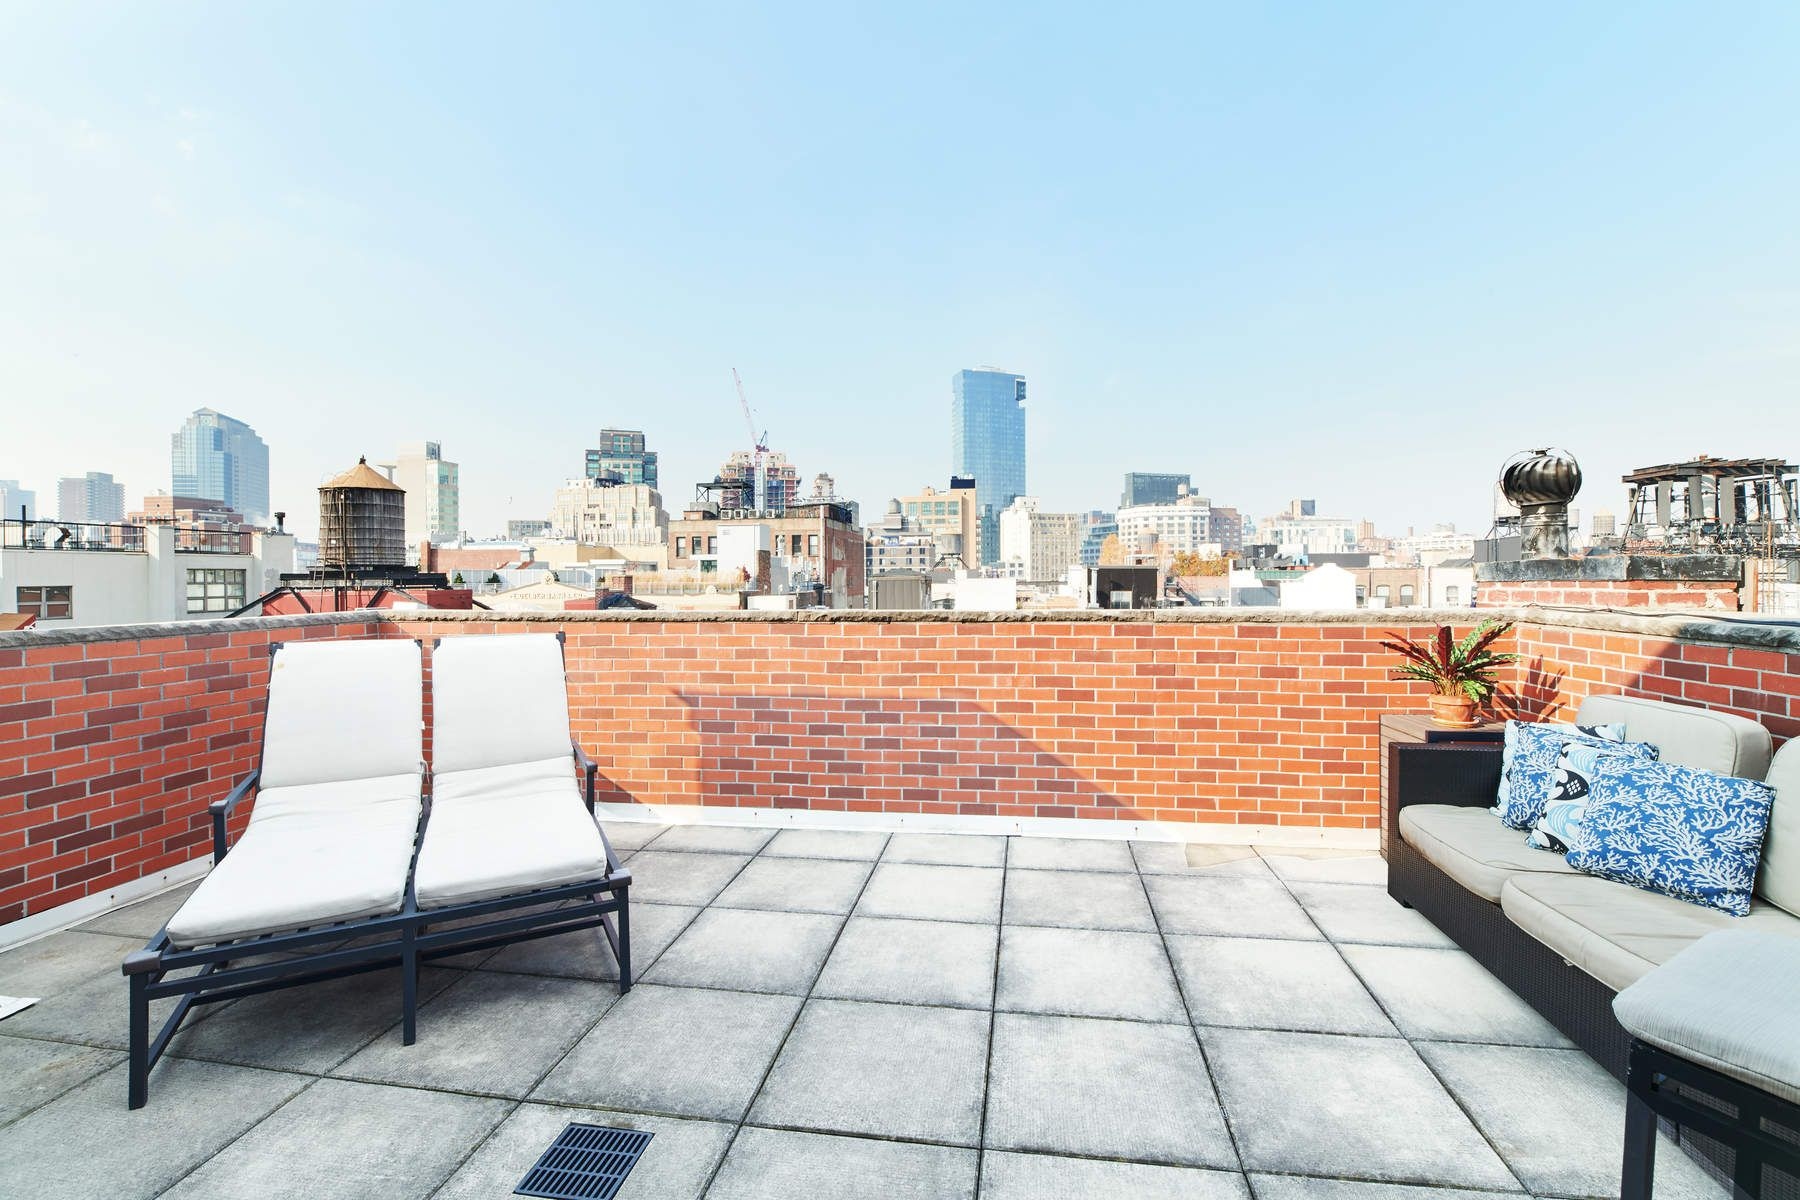 Additional photo for property listing at 83 Mercer Street 83 Mercer Street New York, New York 10012 United States